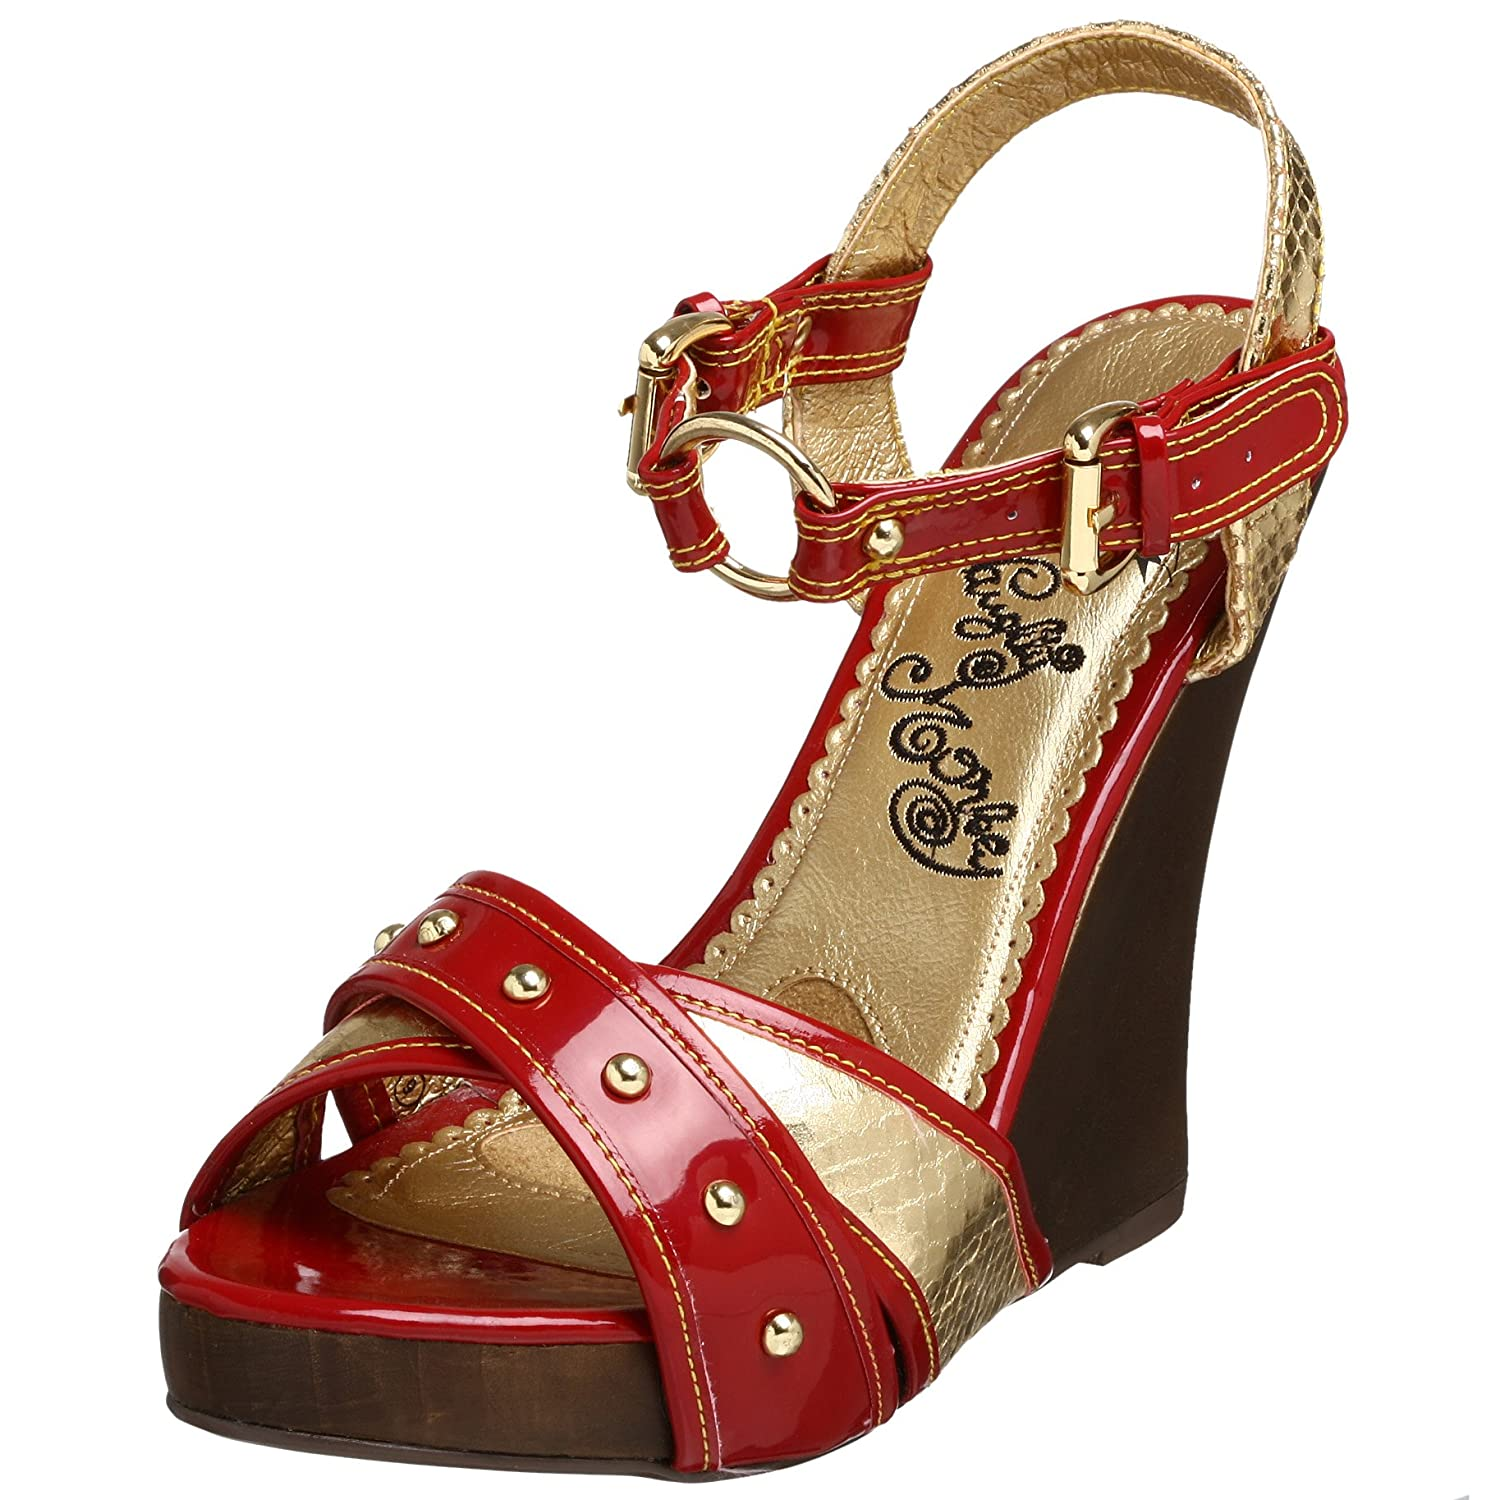 Naughty Monkey Women's Tallest In Class Wedge: Women's Shoes - Free Overnight Shipping & Return Shipping from endless.com